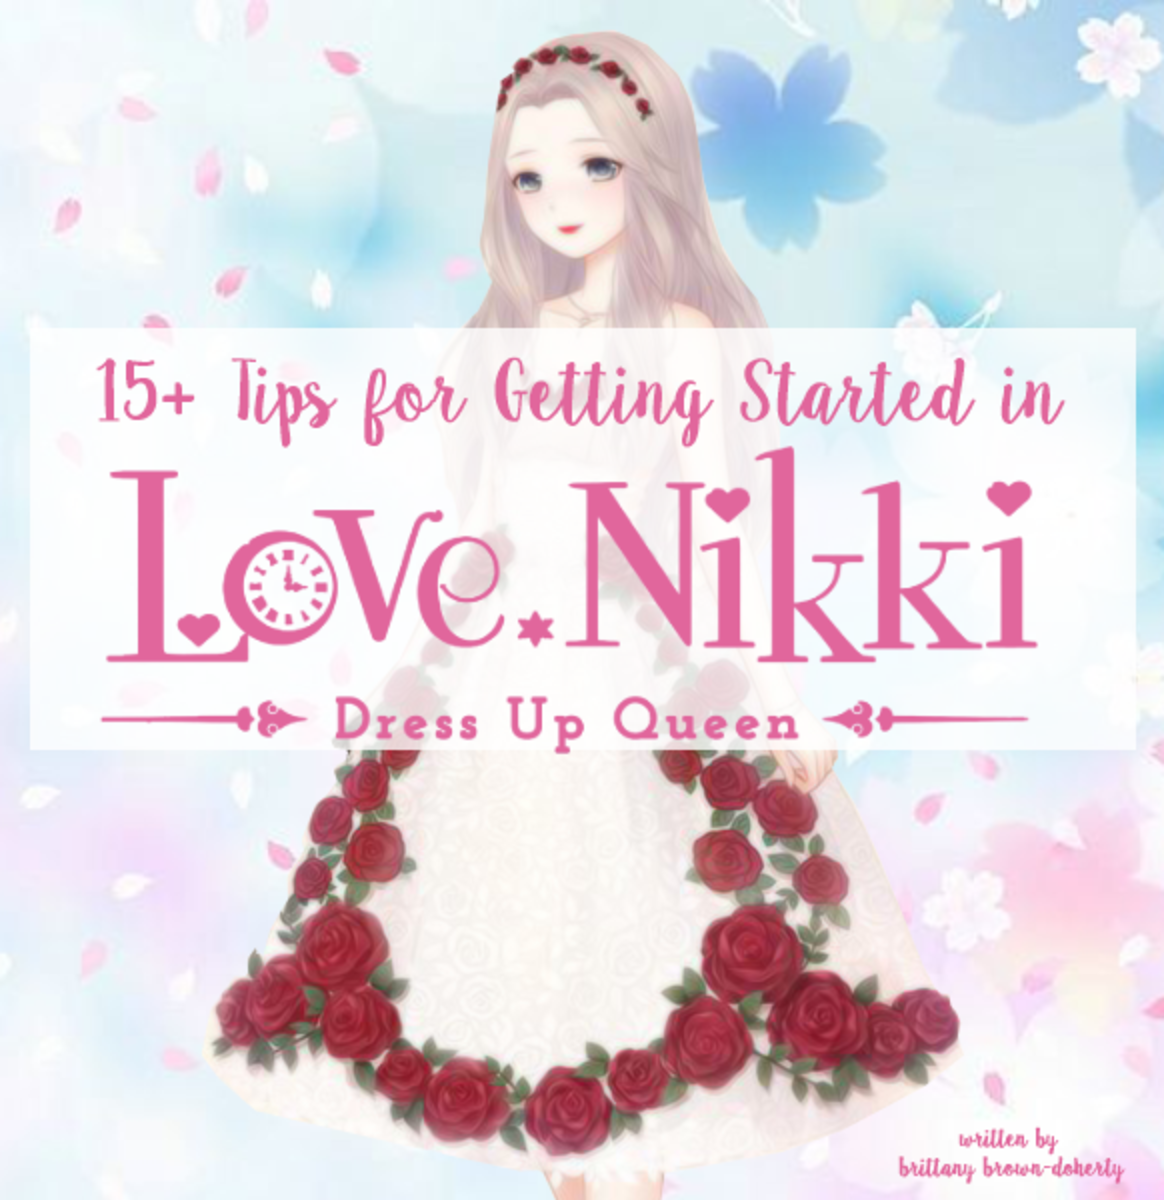 15+ Tips for Getting Started in Love Nikki Dress Up Queen!